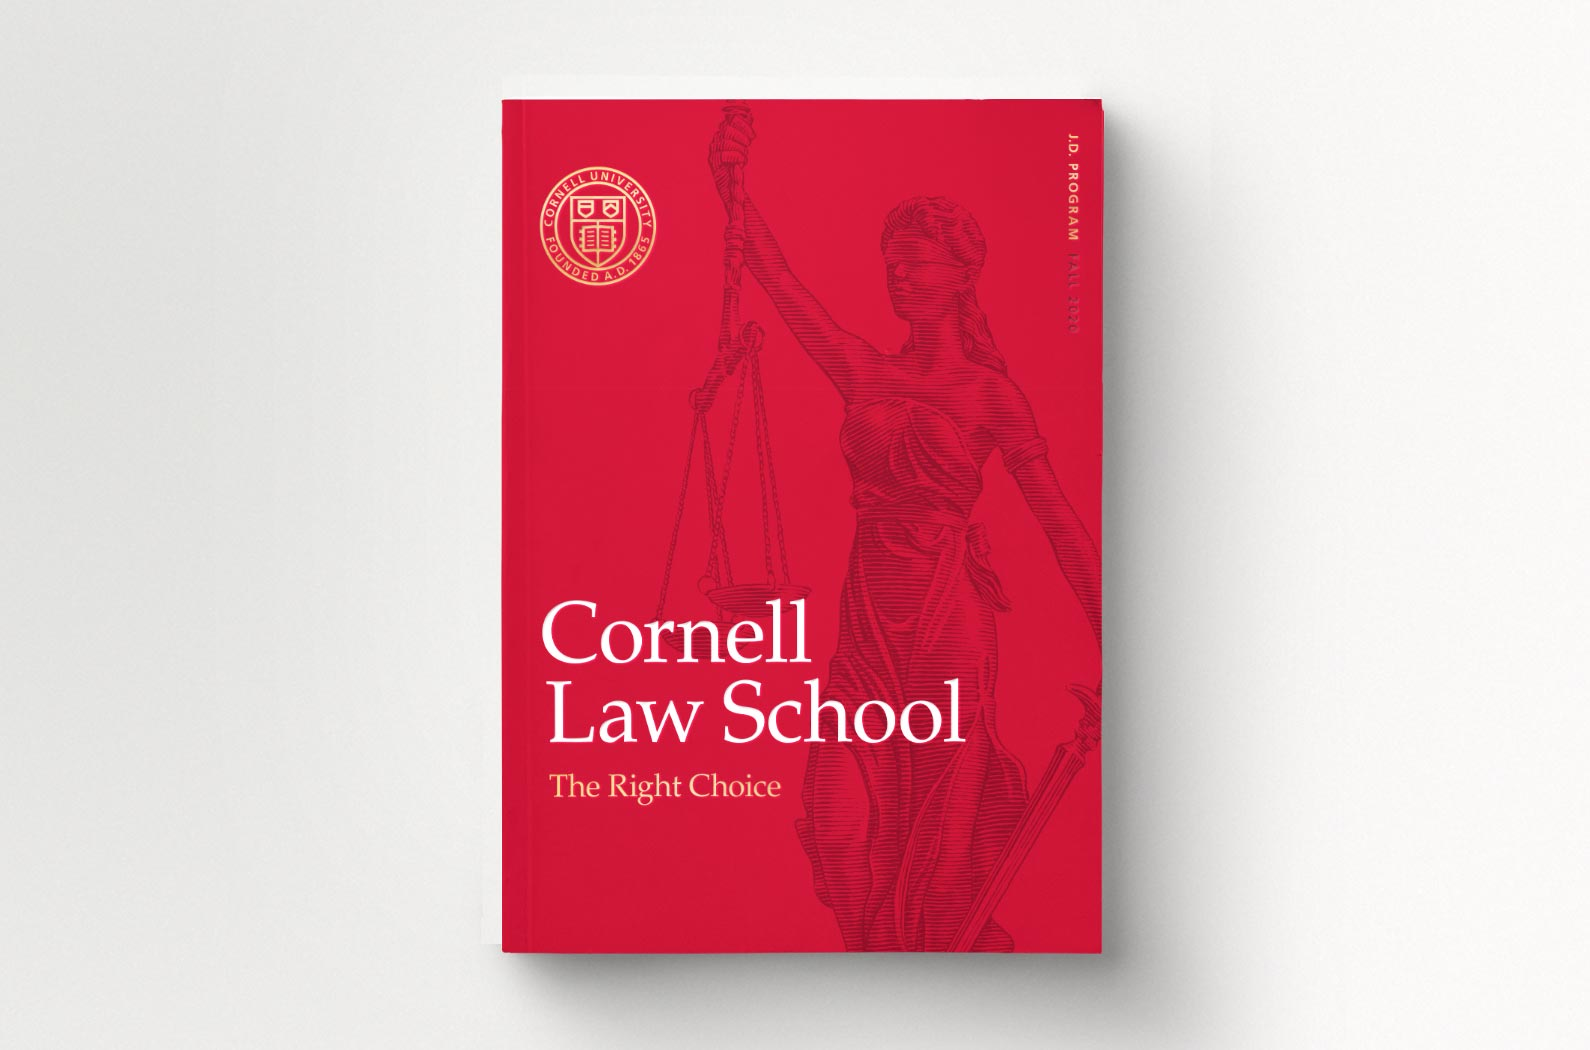 Cornell Law School J.D. Viewbook Cover